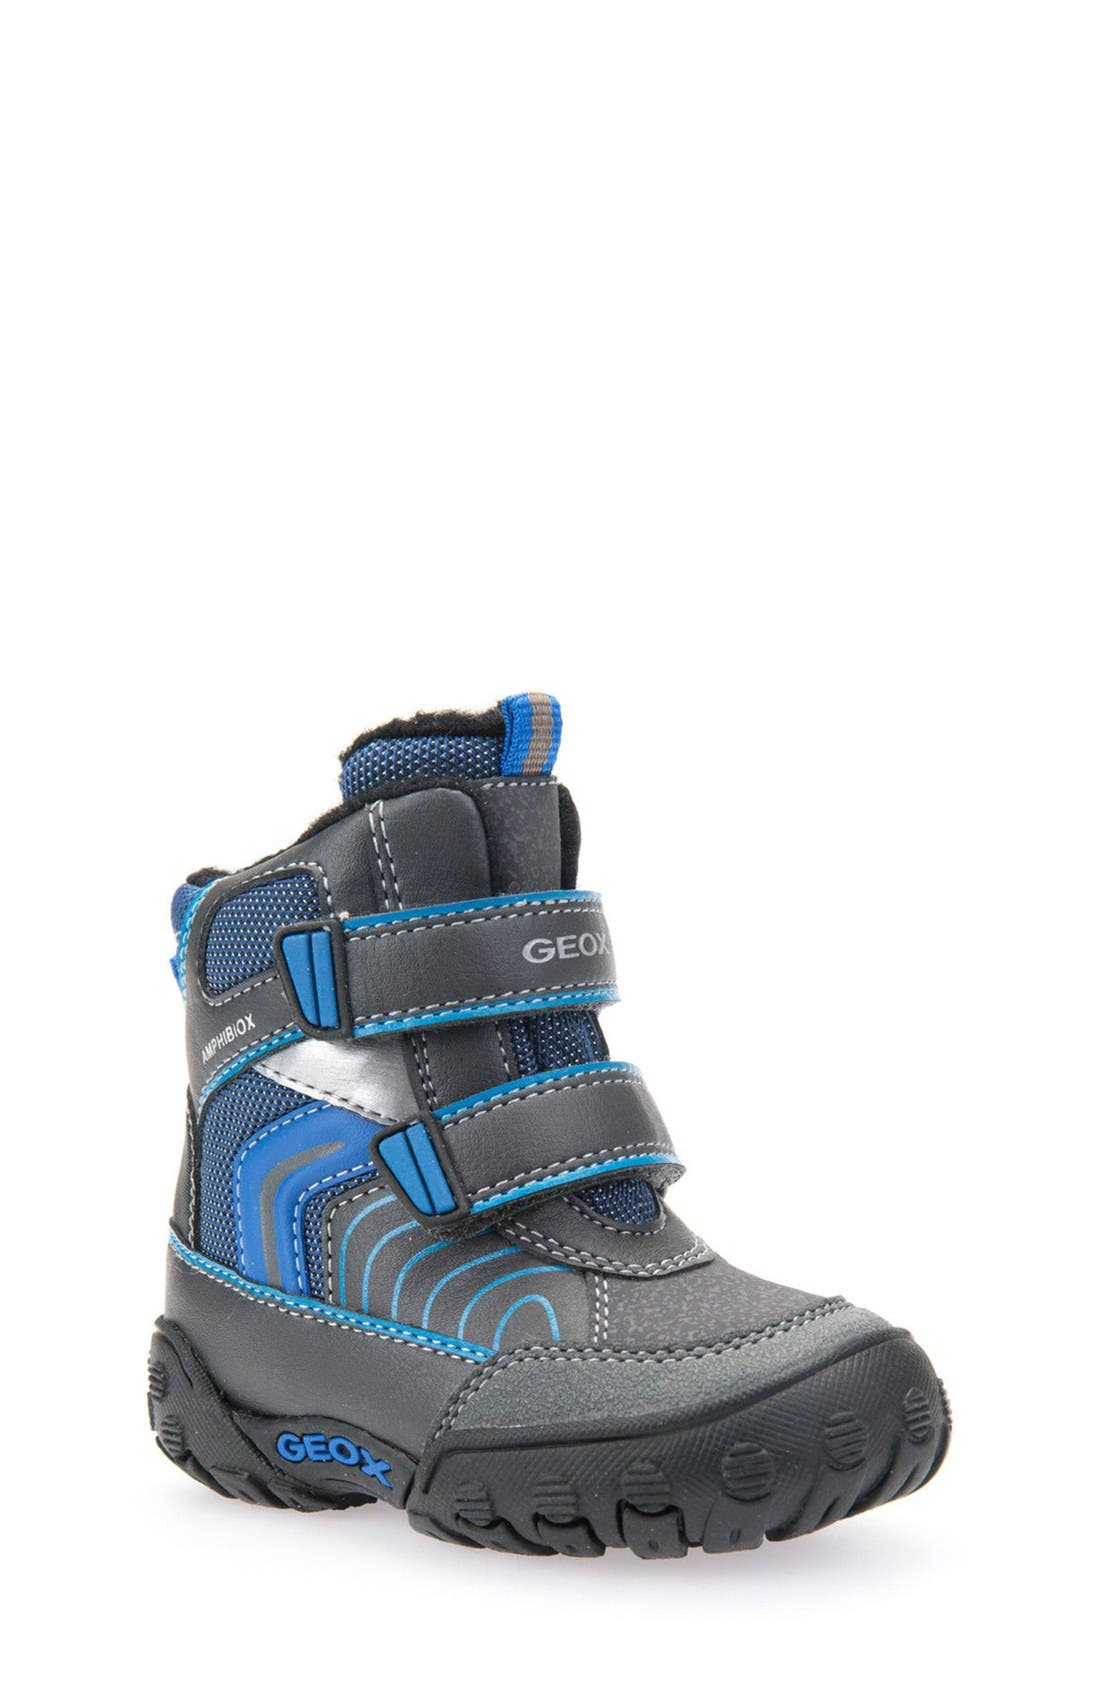 GEOX 'Gulp' Waterproof Sneaker Boot